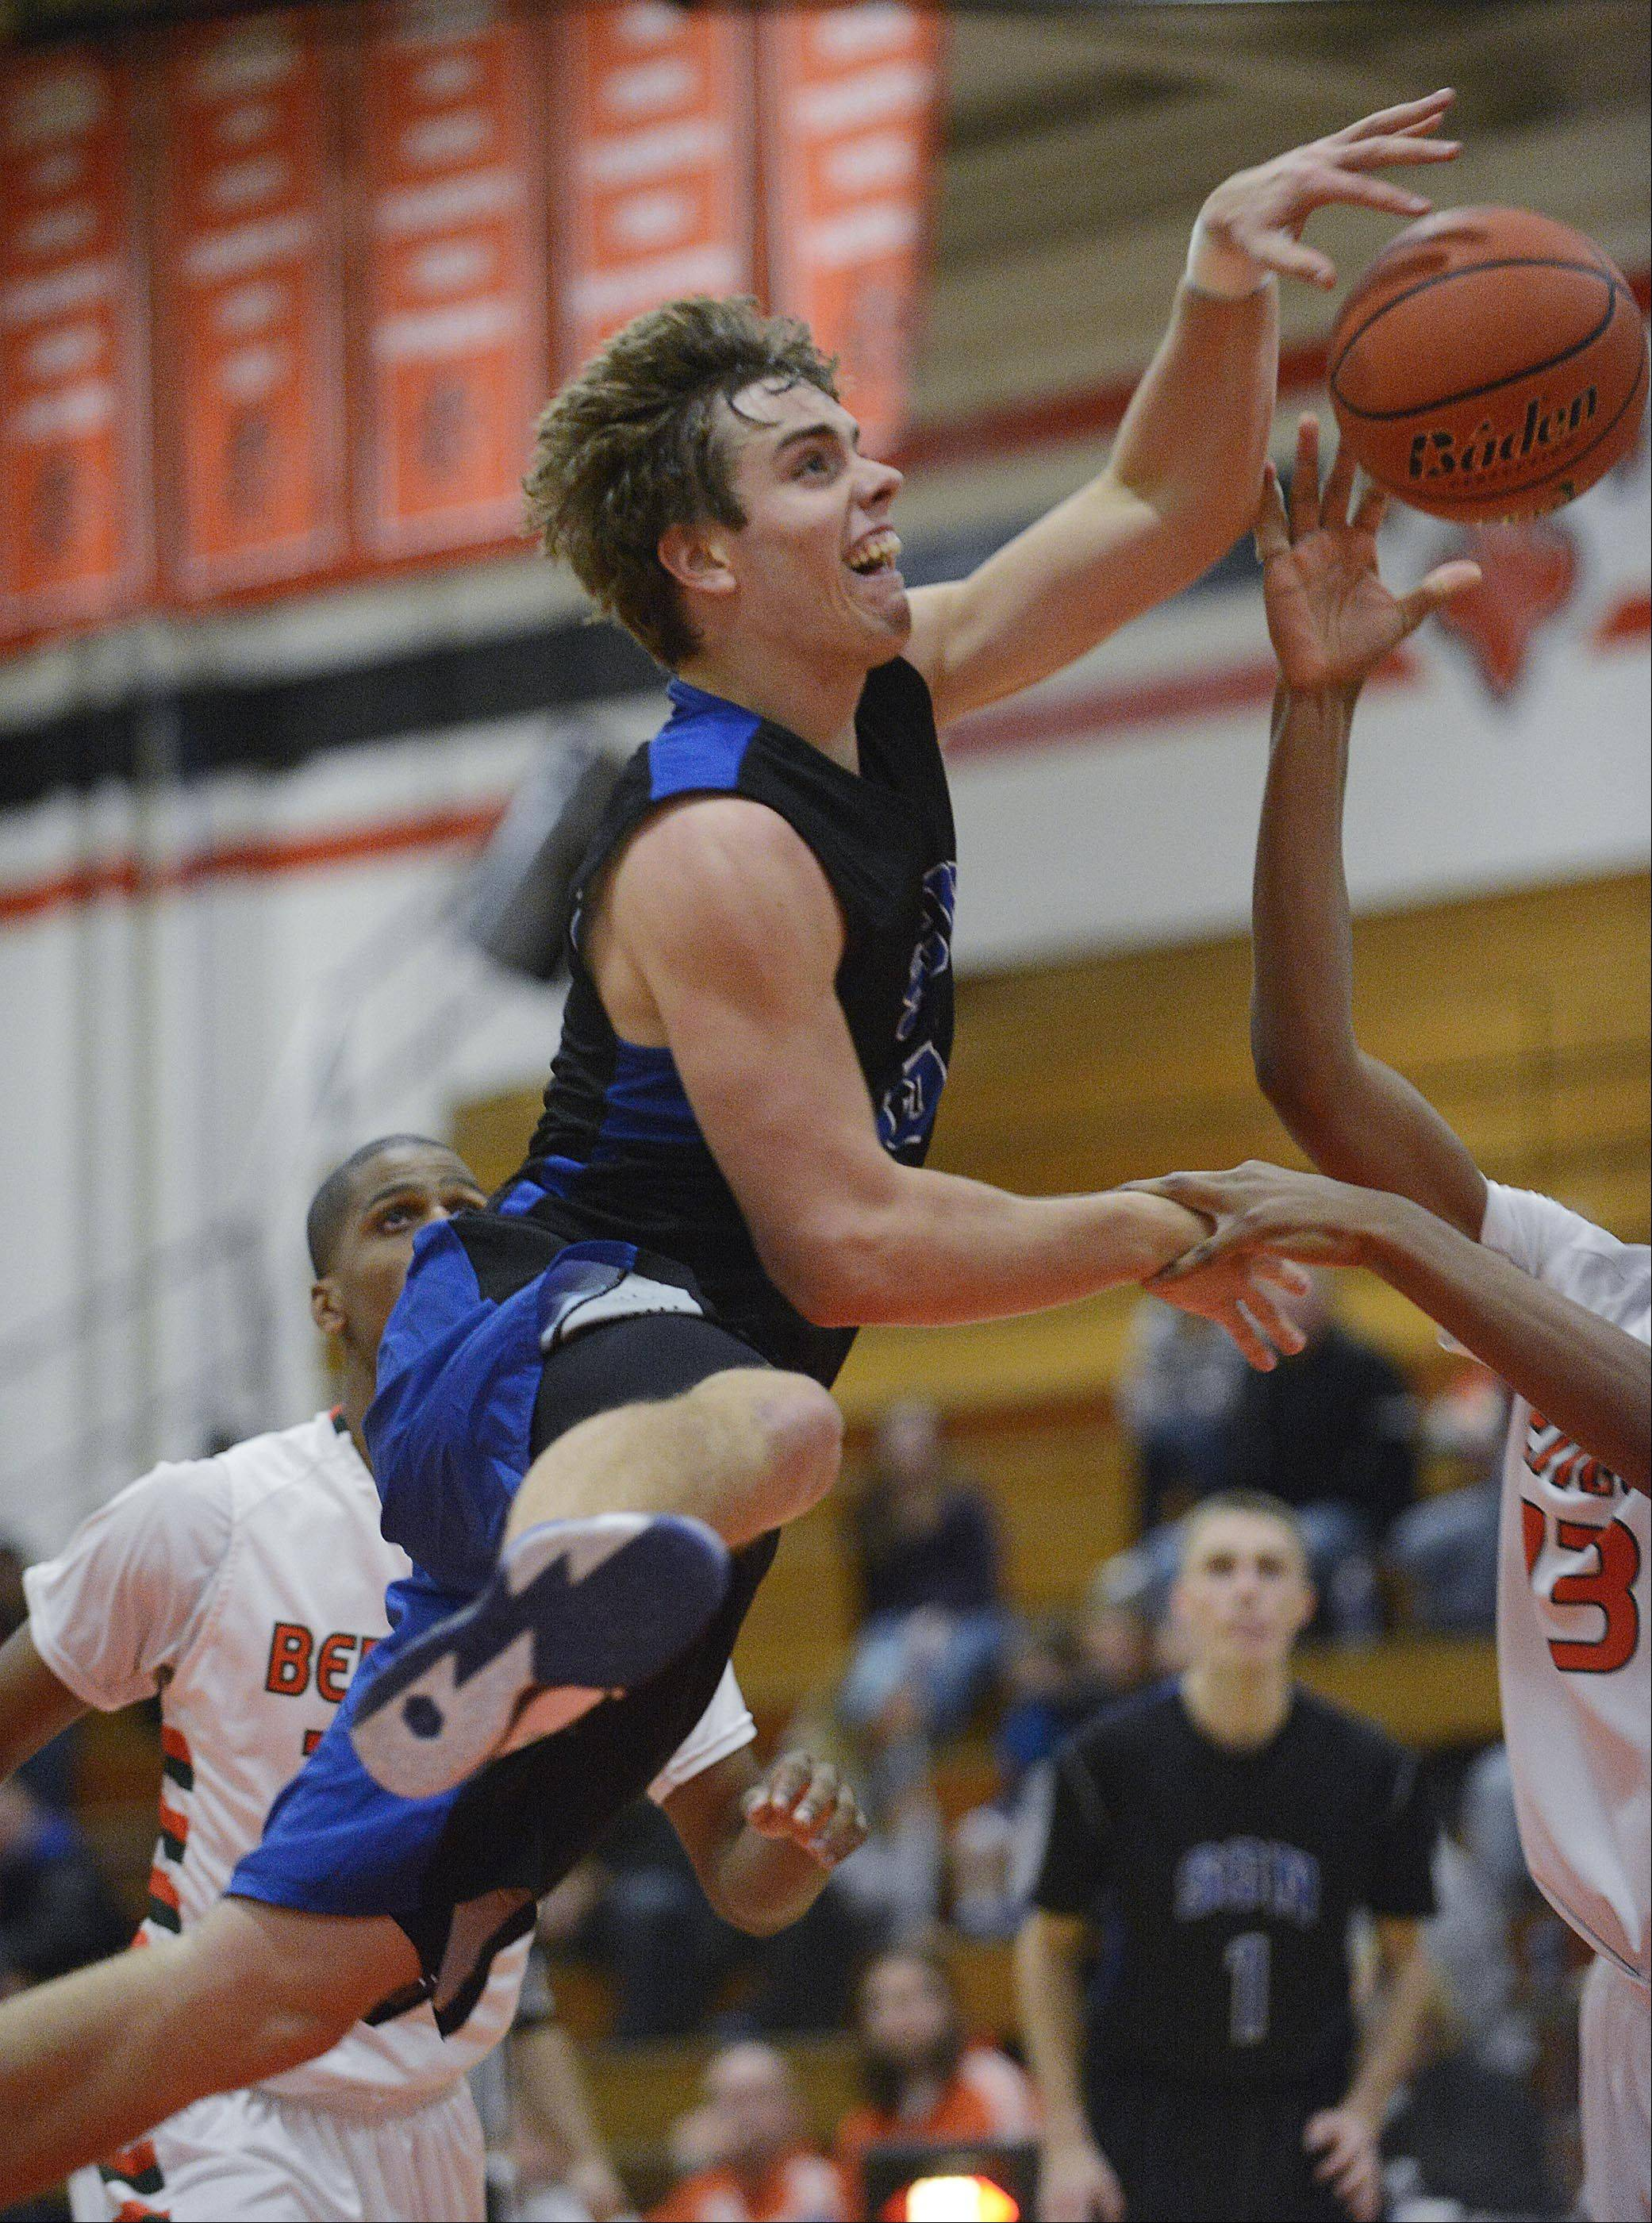 St. Charles North's Erik Miller loses the ball as he is grabbed by Plainfield East's Myles Ward Tuesday in St. Charles. No foul was called.